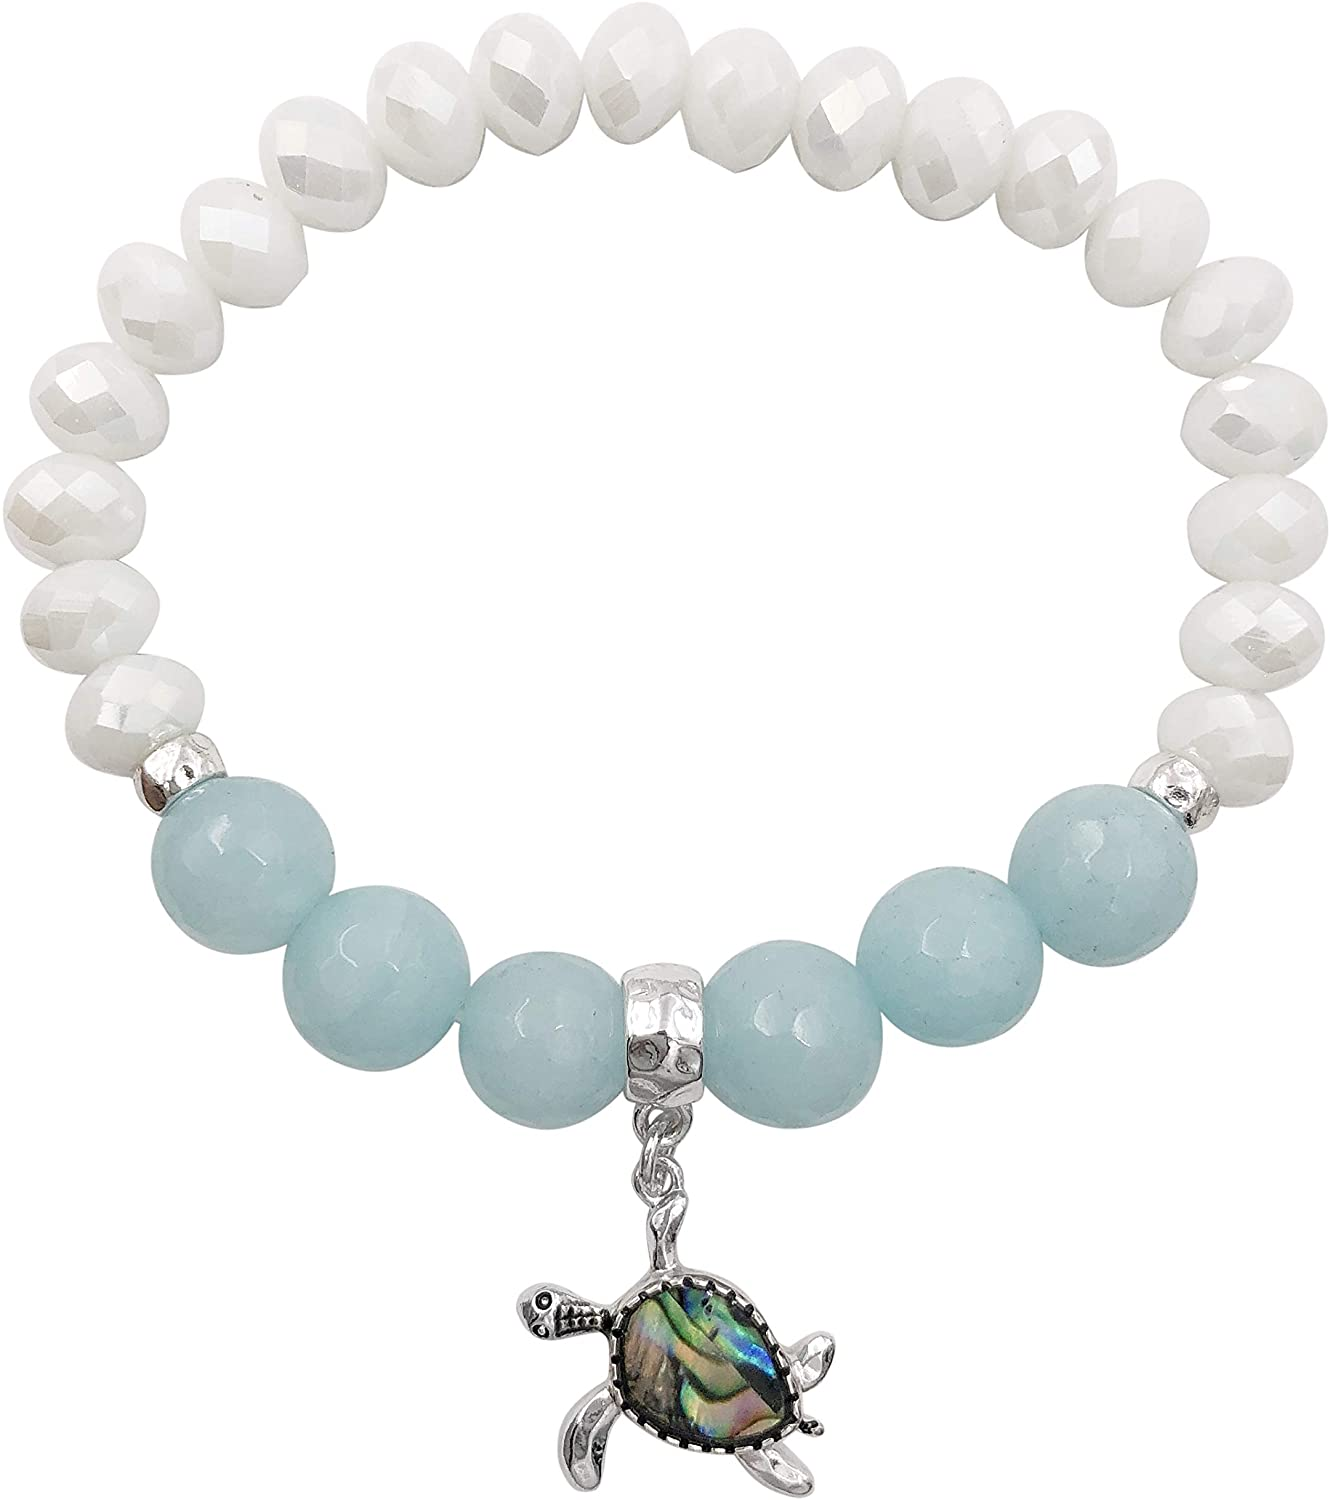 Abalone Shell Inlay Blue Natural Stone & Glass Beaded Sealife Silver Tone Charm Stretch Bracelet - Assorted Animals